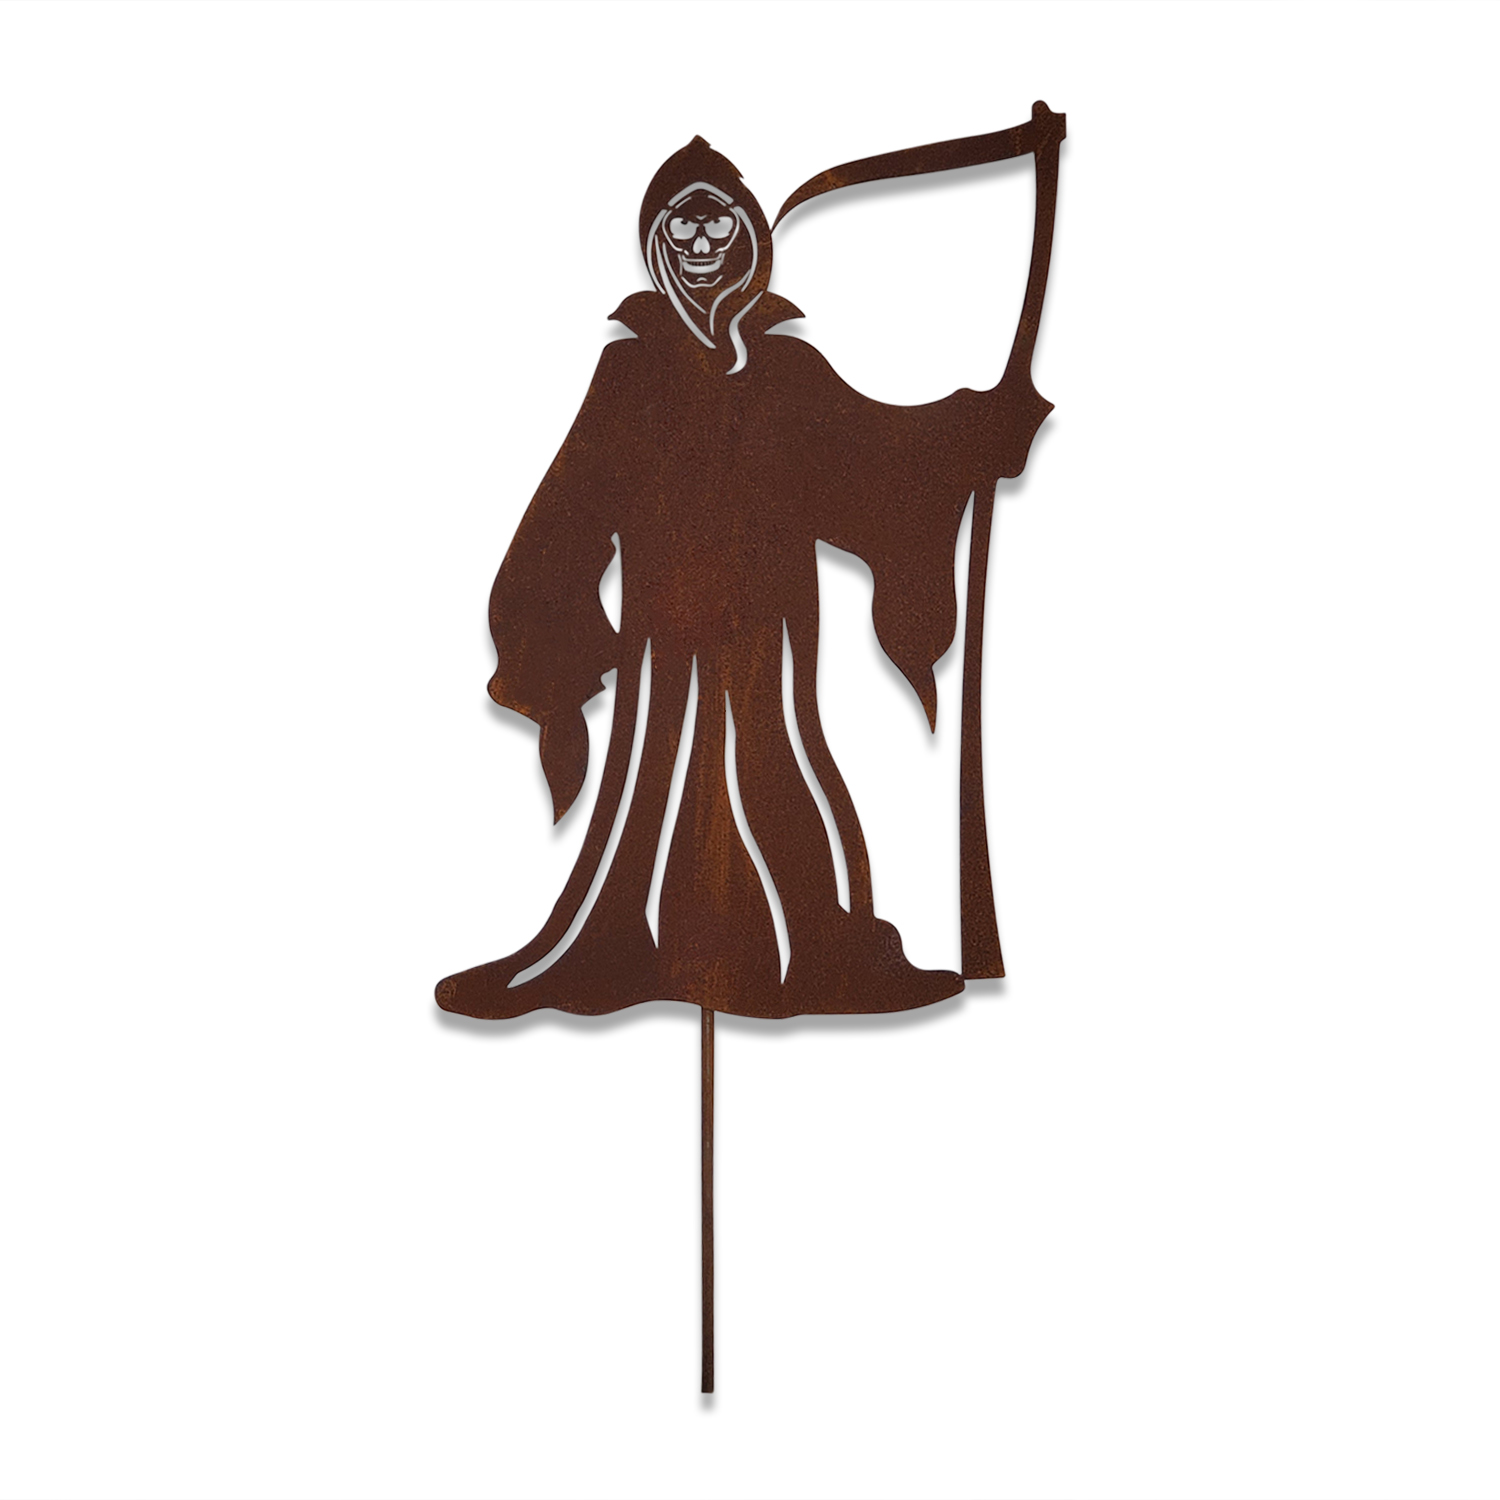 The Grim Reaper - Rusted Garden Stake